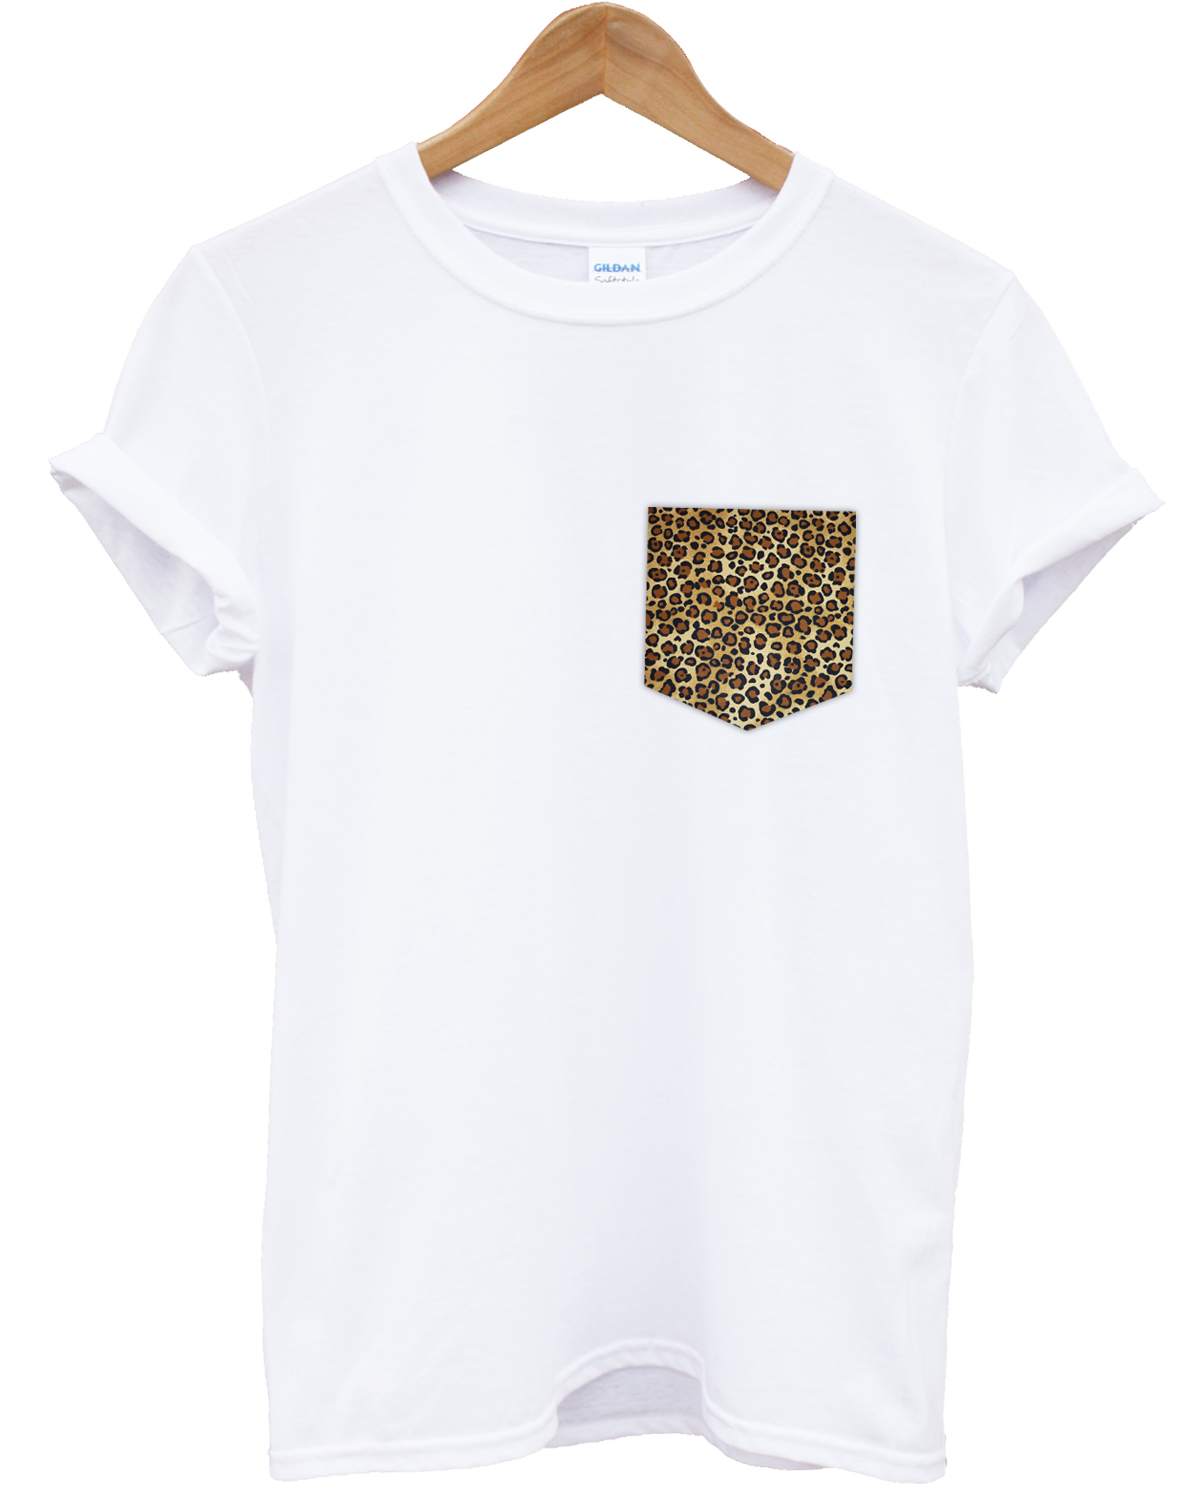 Leopard print pocket white t shirt